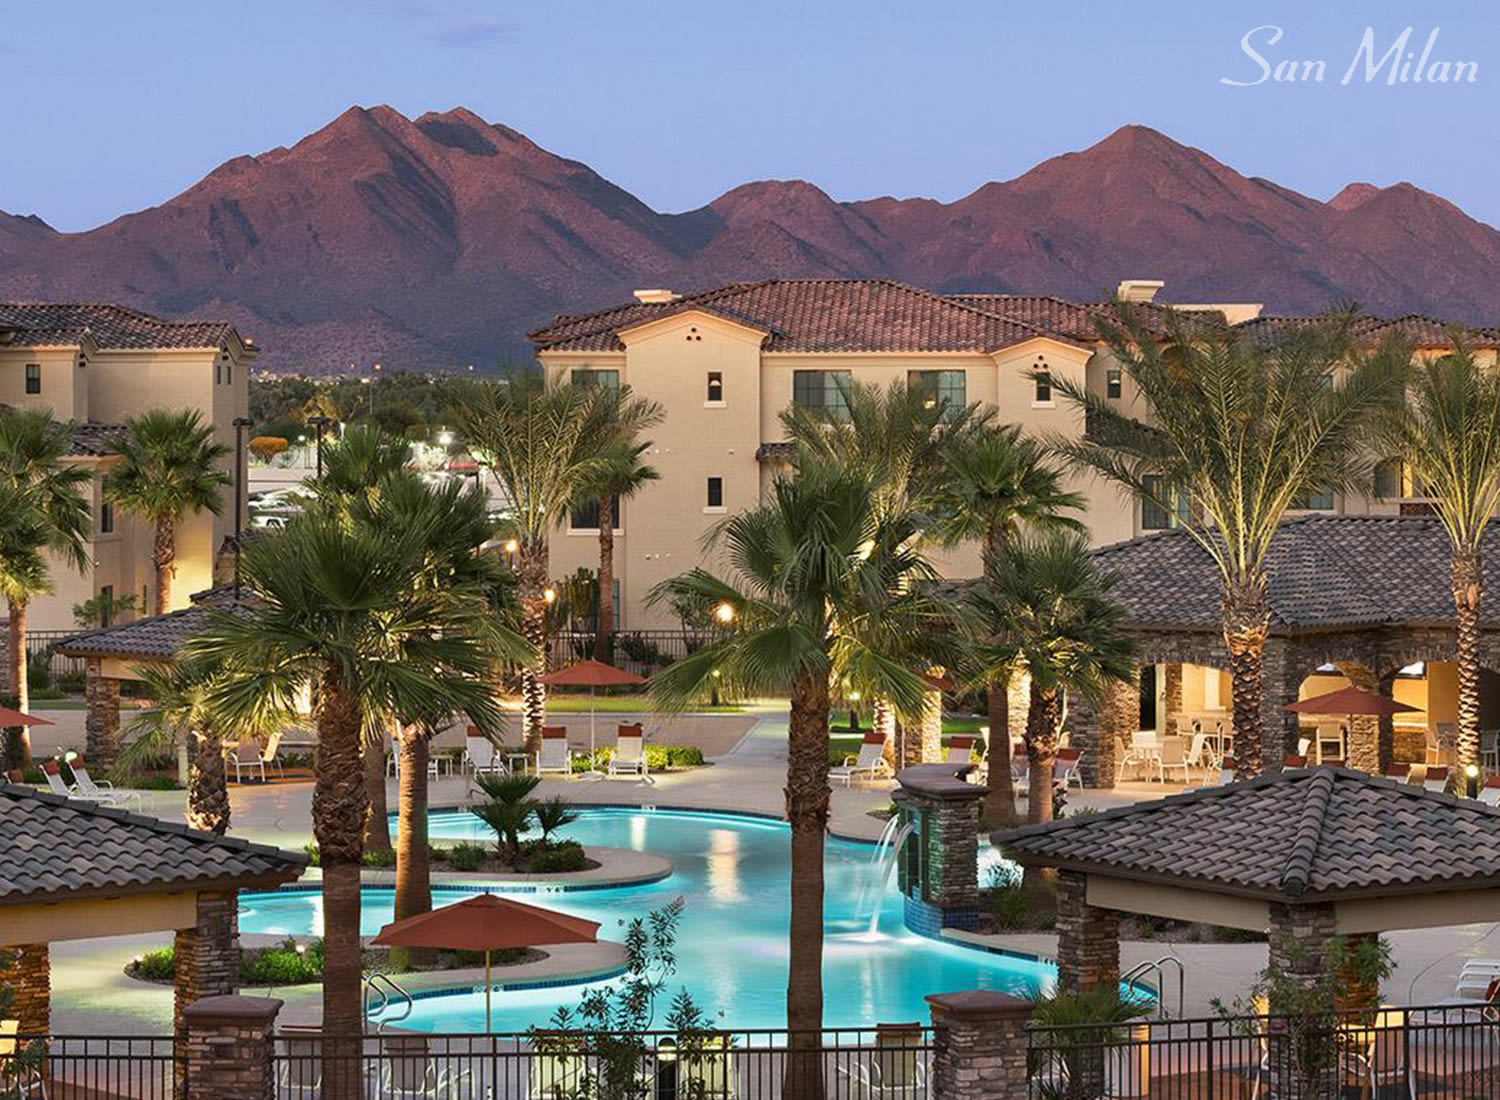 San Milan apartments in Phoenix, Arizona